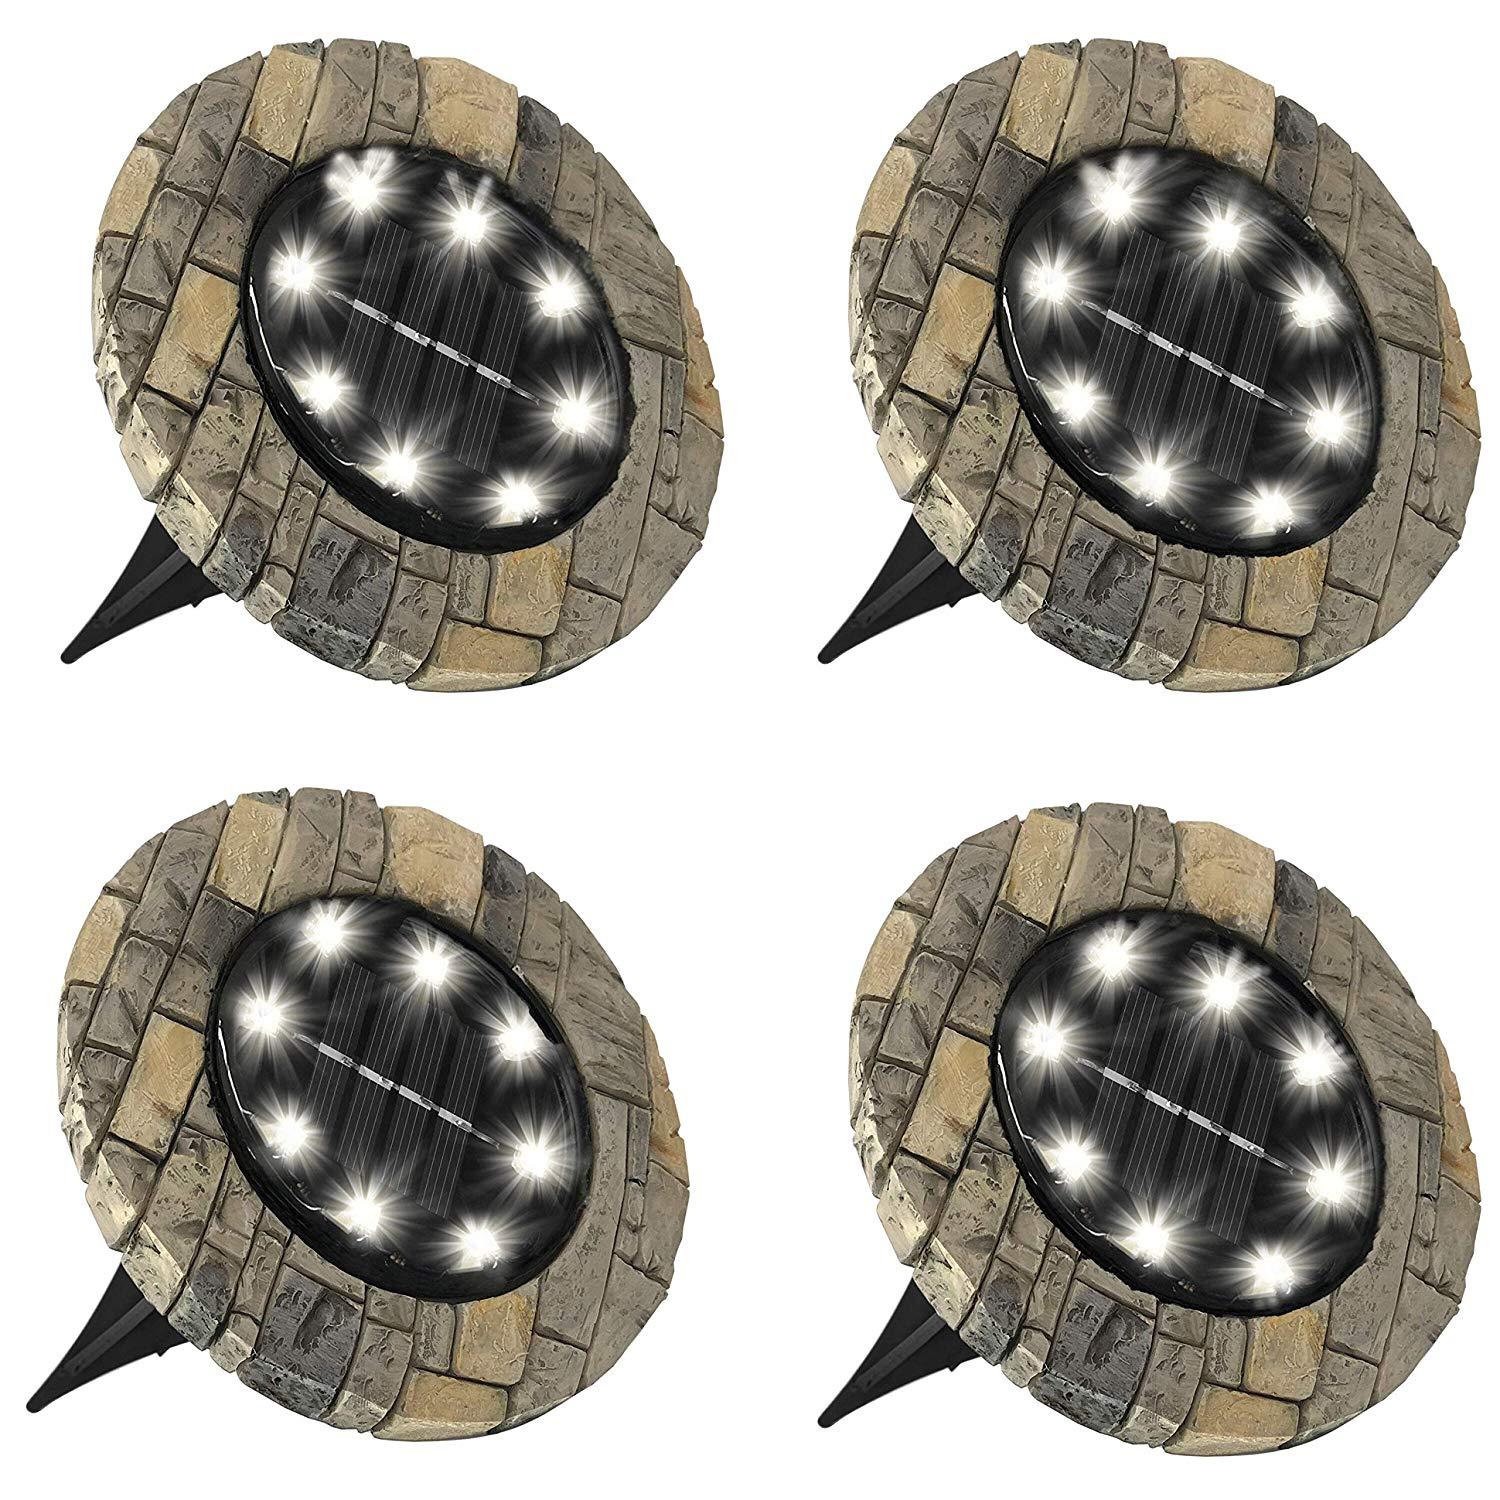 Homemax Solar Disk Lights - Set of 4